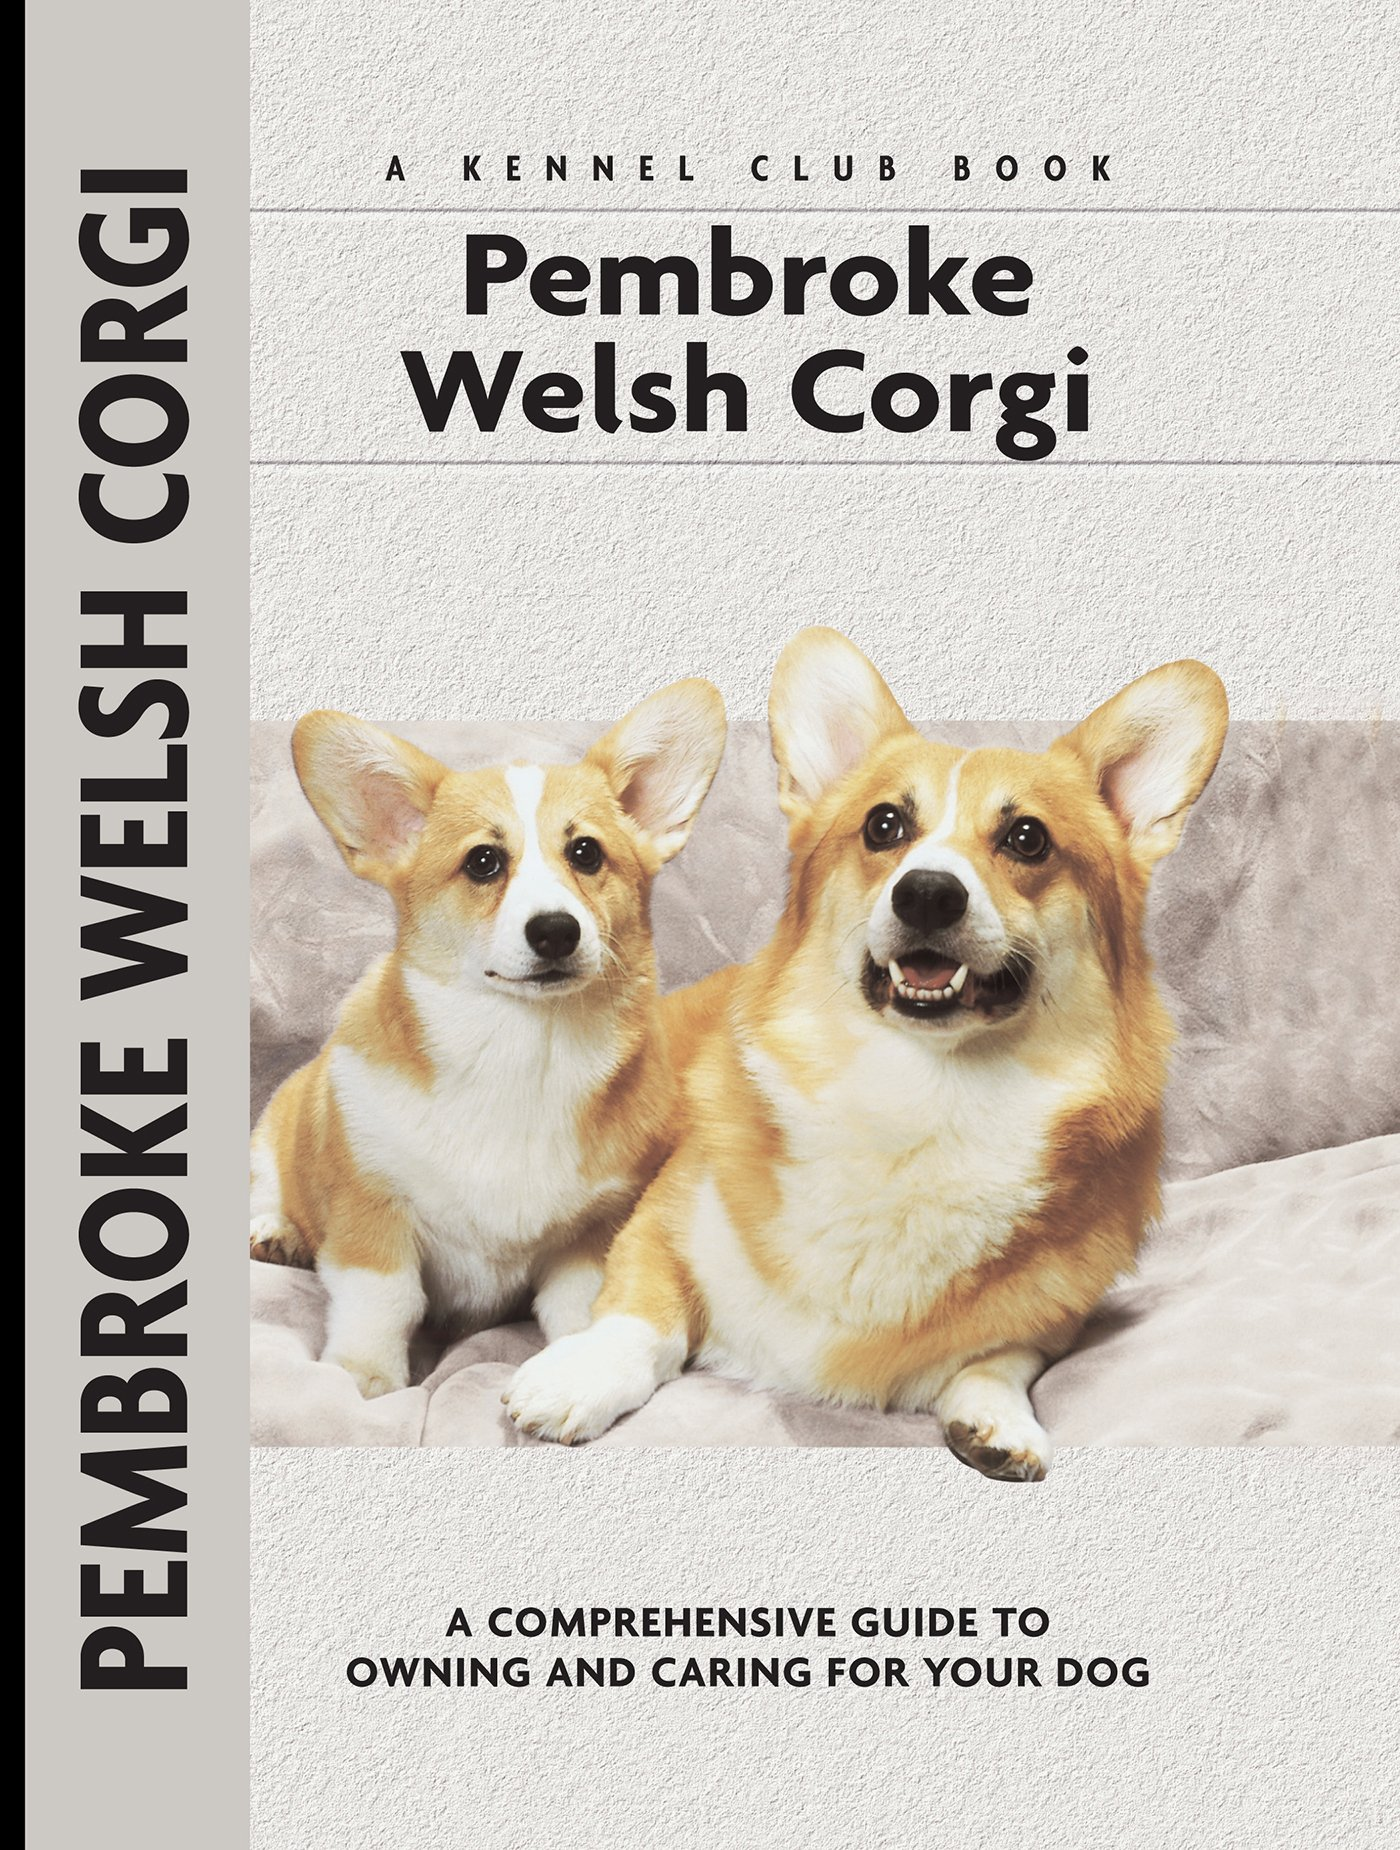 Pembroke welsh corgi comprehensive owners guide e hywel burton pembroke welsh corgi comprehensive owners guide e hywel burton 9781593782627 amazon books altavistaventures Image collections